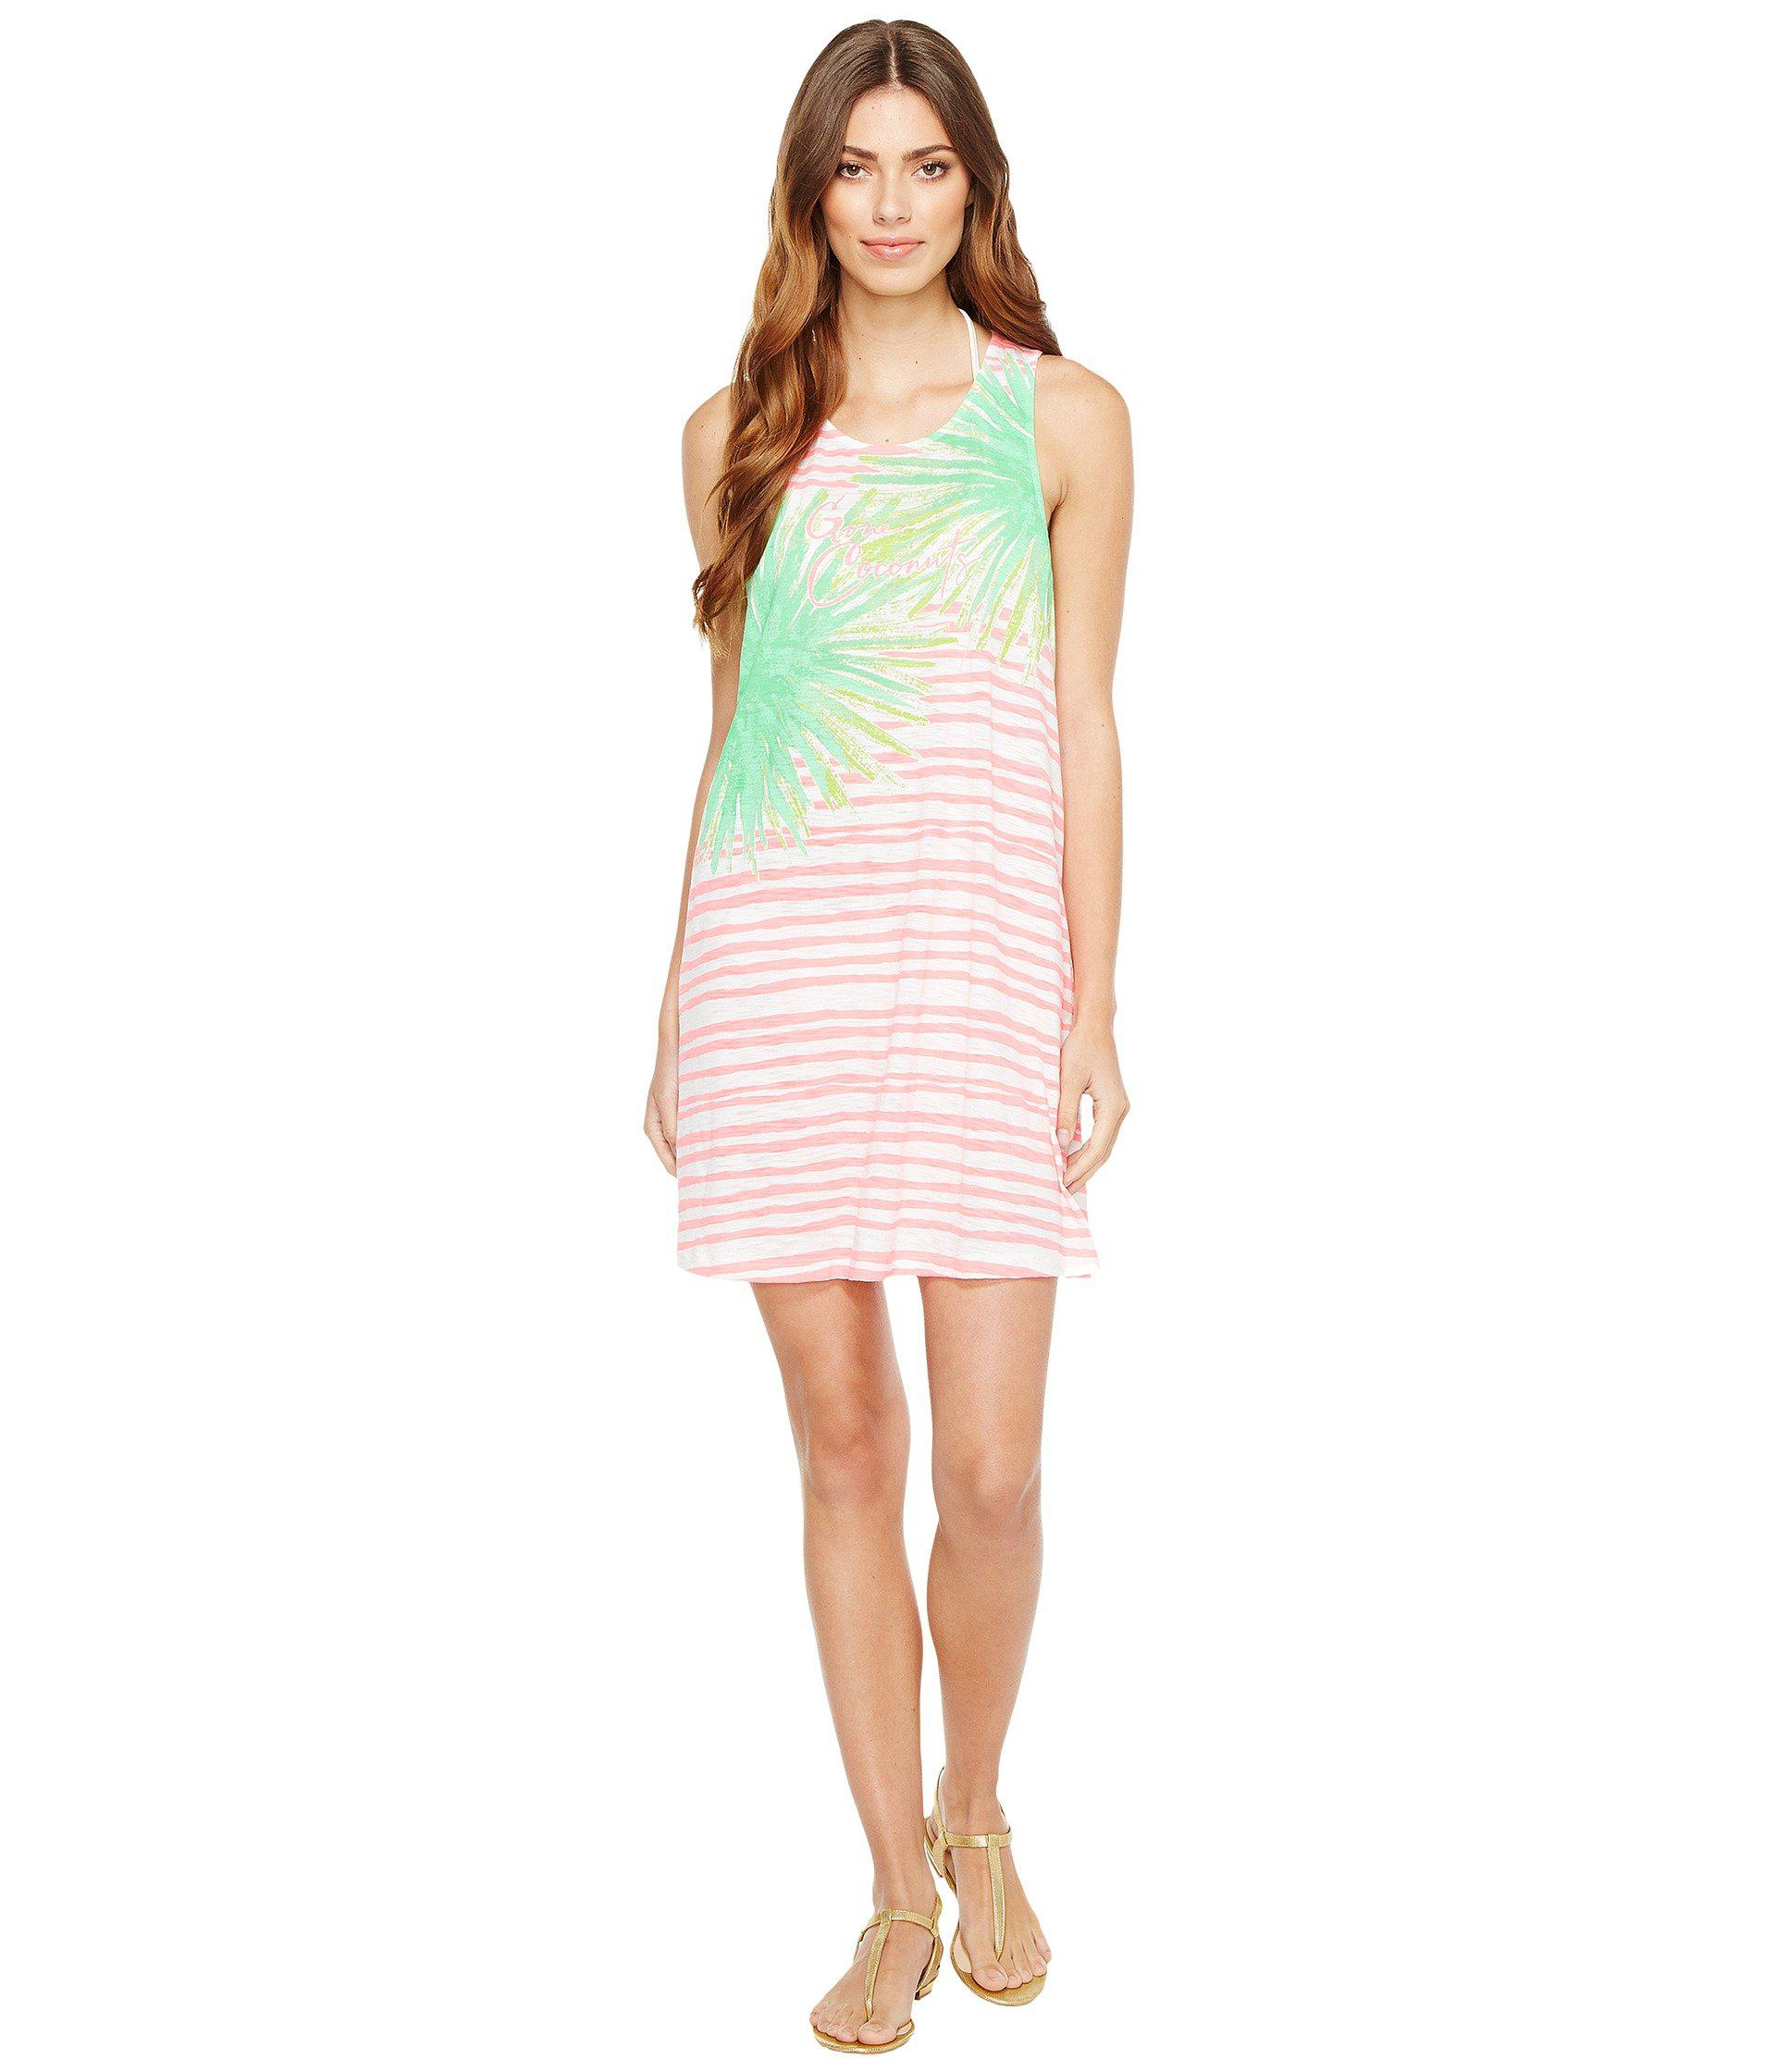 02f7deb5b0 Lyst - Lilly Pulitzer Whitney Cover-up (coral Reef Gone Coconuts ...